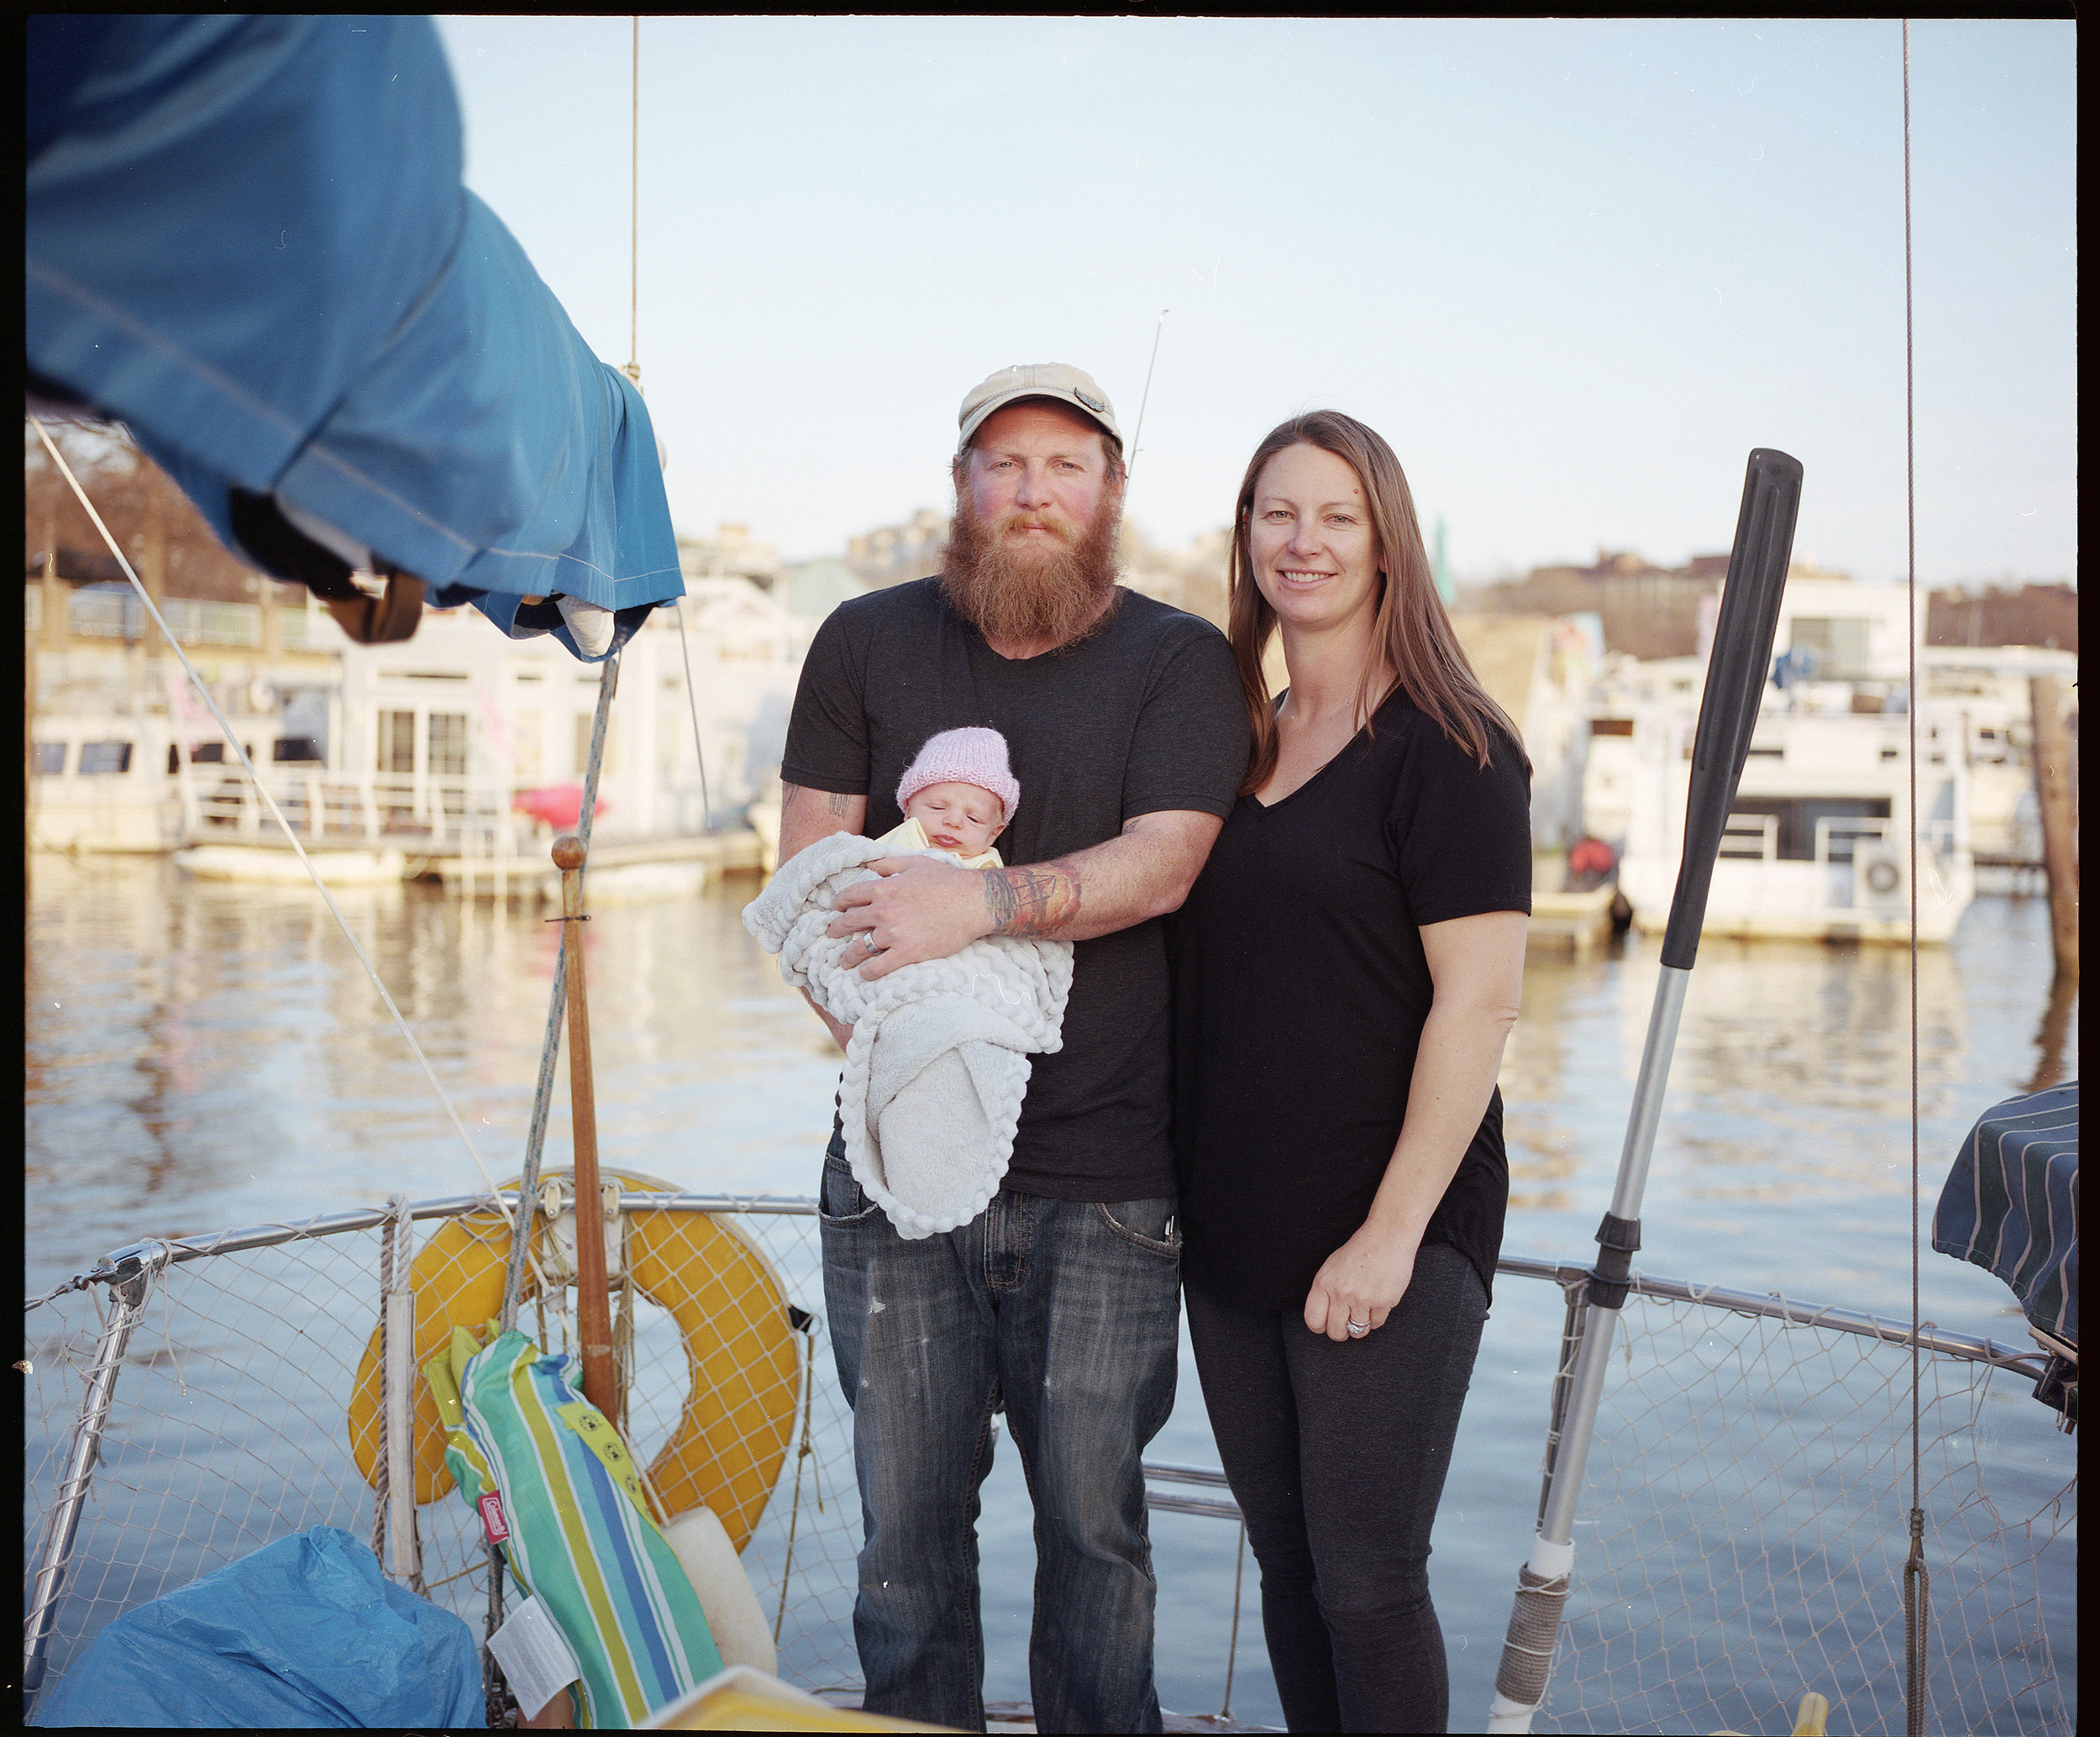 """Greg Whittier, Aubrey Andre and their then 17-day-old daughter Rue Constance aboard their sailboat Tenalach.  """"Gangplank is a family,"""" says Andre. """"Now we have an almost 5 month old baby, and she has been held and cared for by many neighbors. This childhood cannot be recreated in the current suburban neighbors, because here, everyday is a block party."""""""